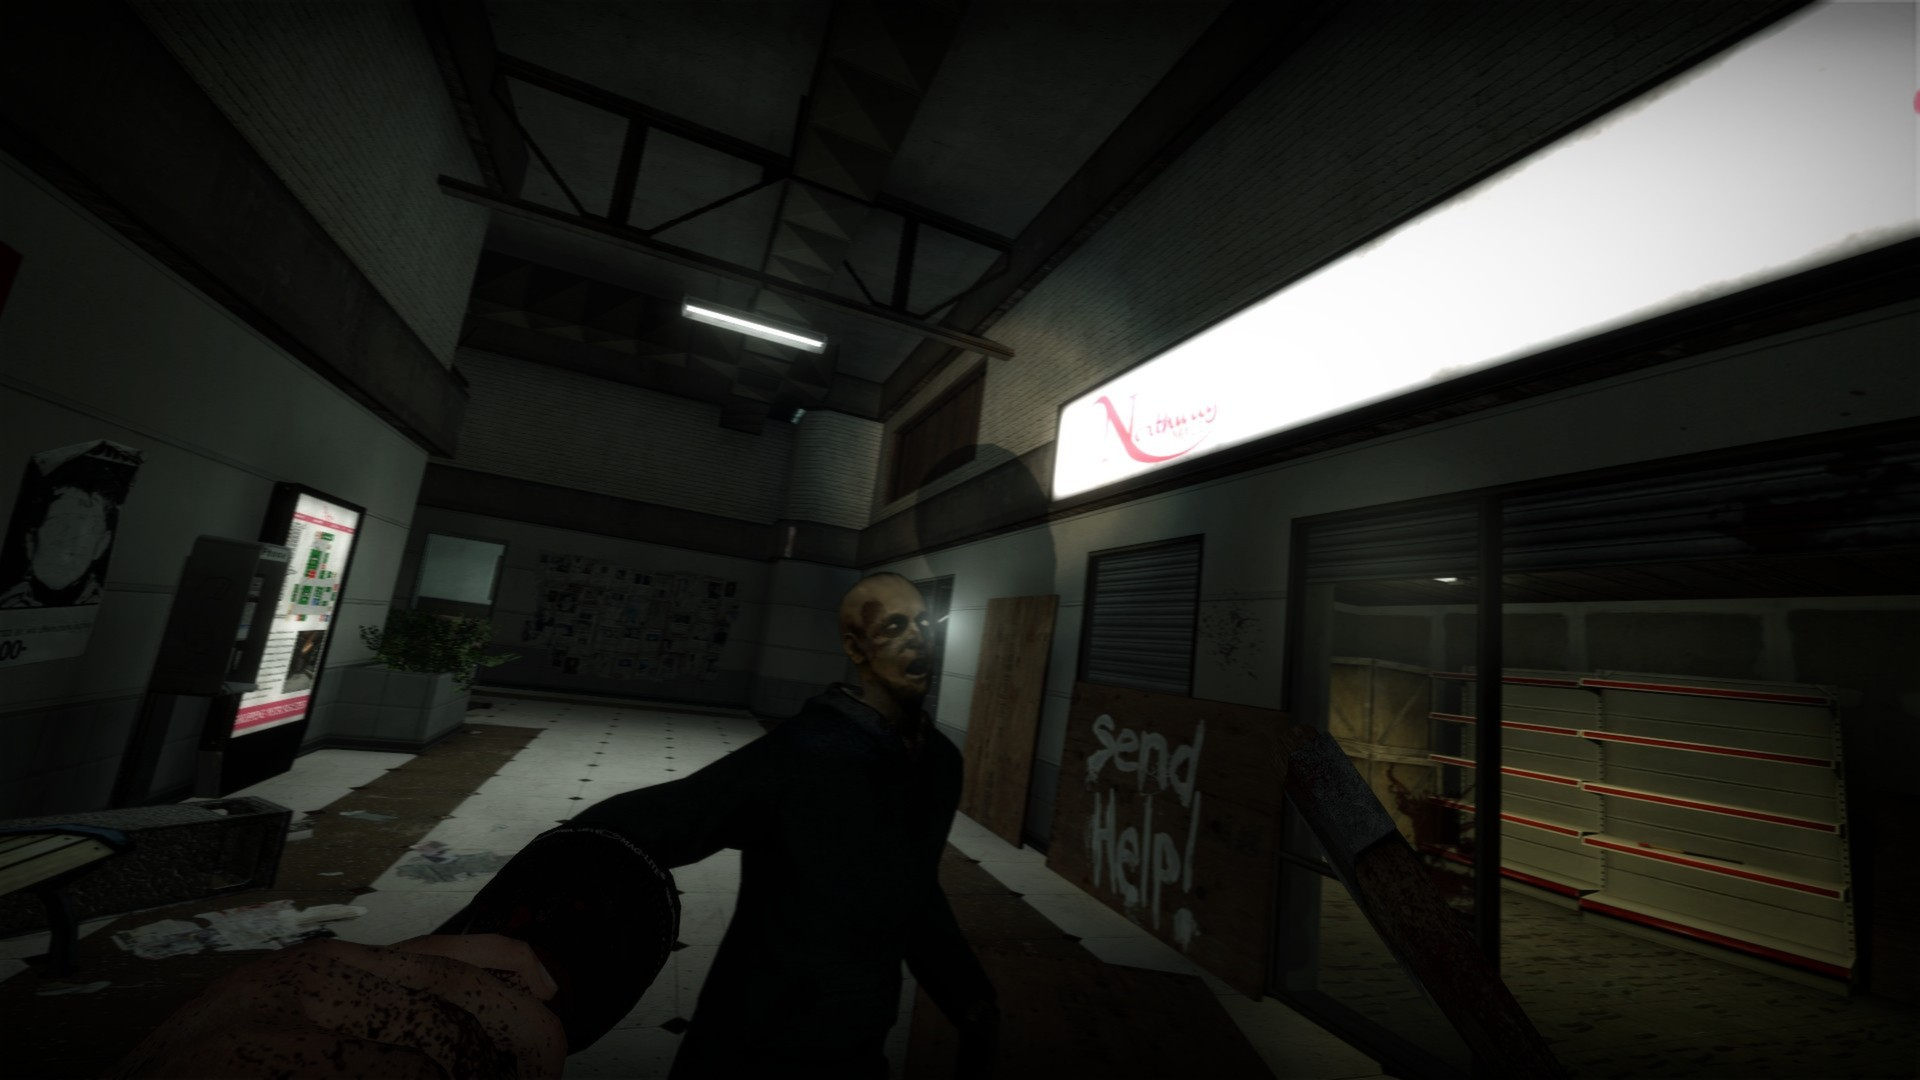 Half-Life 2 Mod No More Room In Hell Now Free On Steam